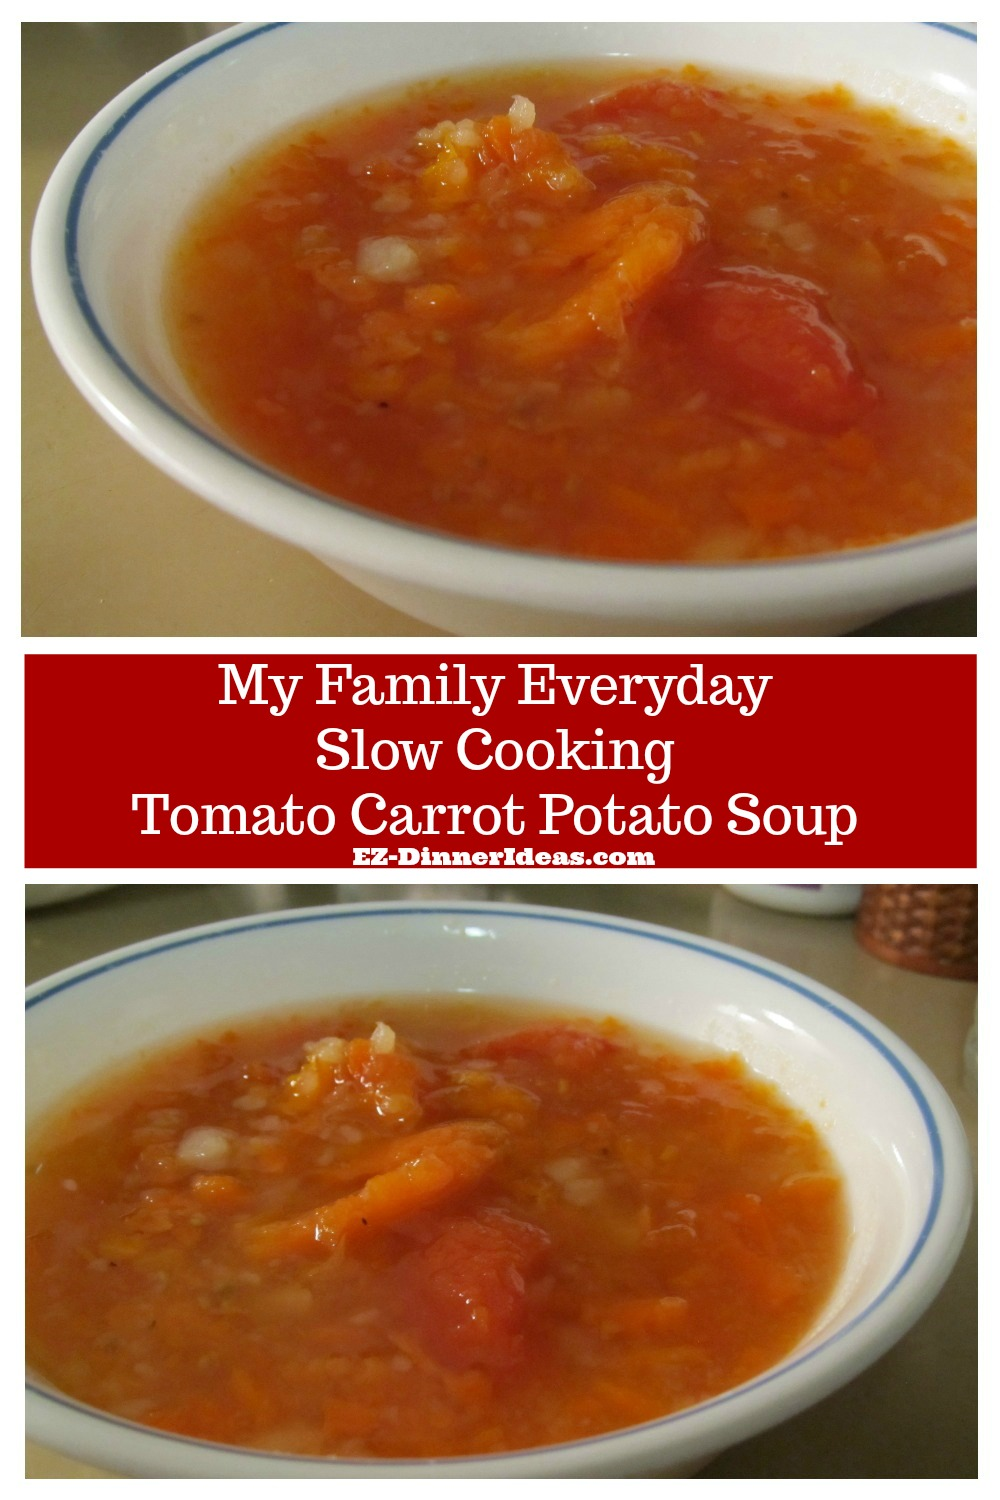 Healthy cooking 100% and all you need to do is chop and drop.  This is my family recipe everyday soup with tomato, carrot and potato.  A natural body cleaner.  Healthy and super delicious!